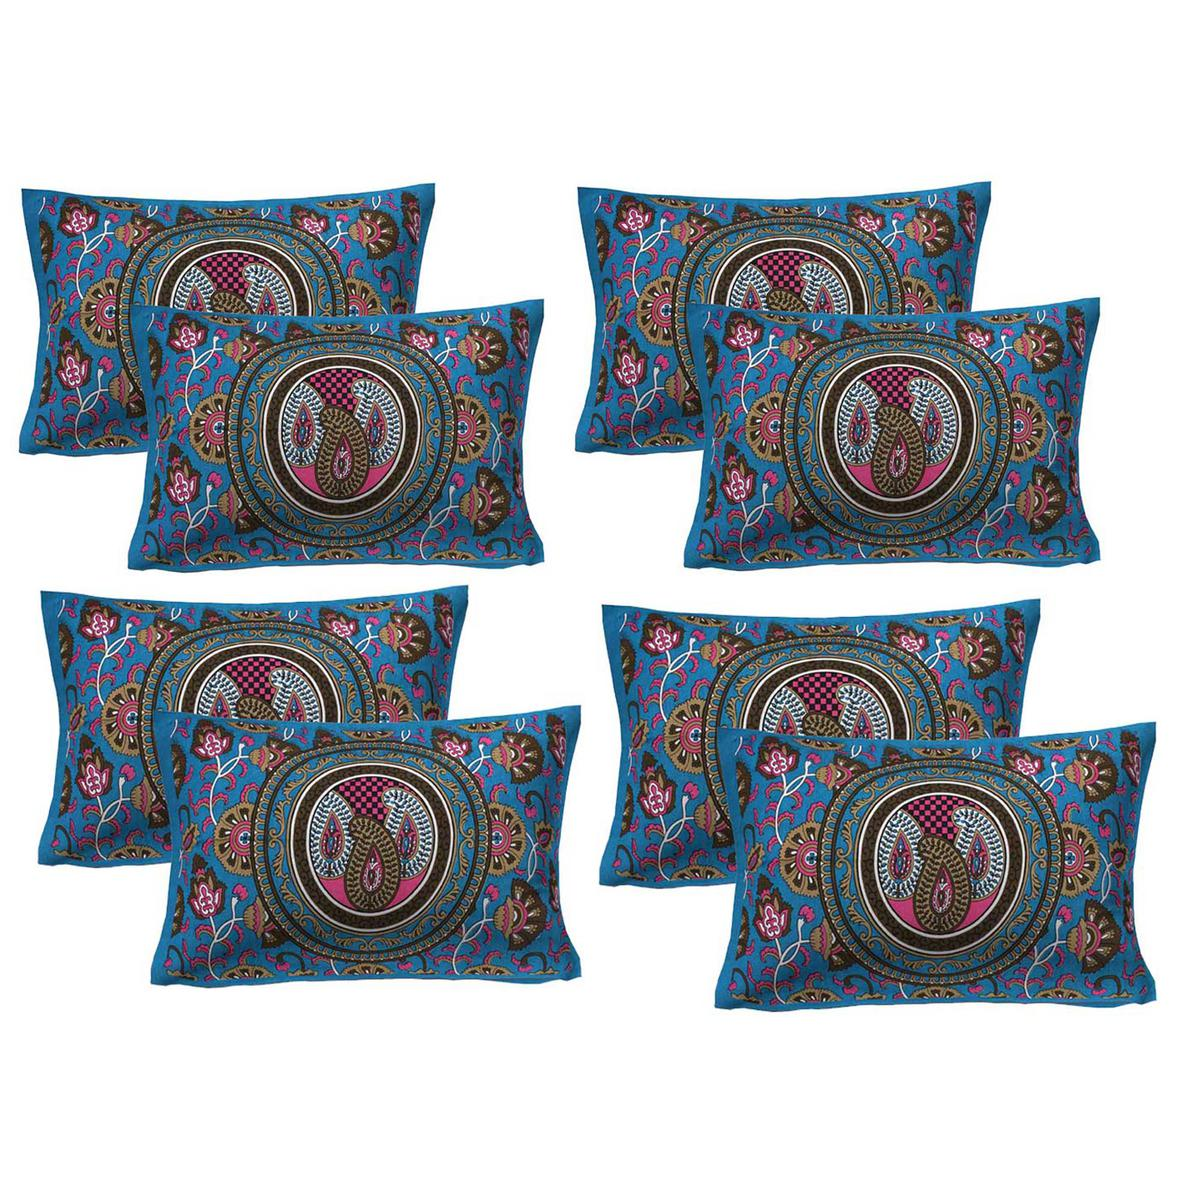 AJ Home - Turquoise Colored 100% Cotton Printed Pillow Covers 4 Sets (8 Pieces)